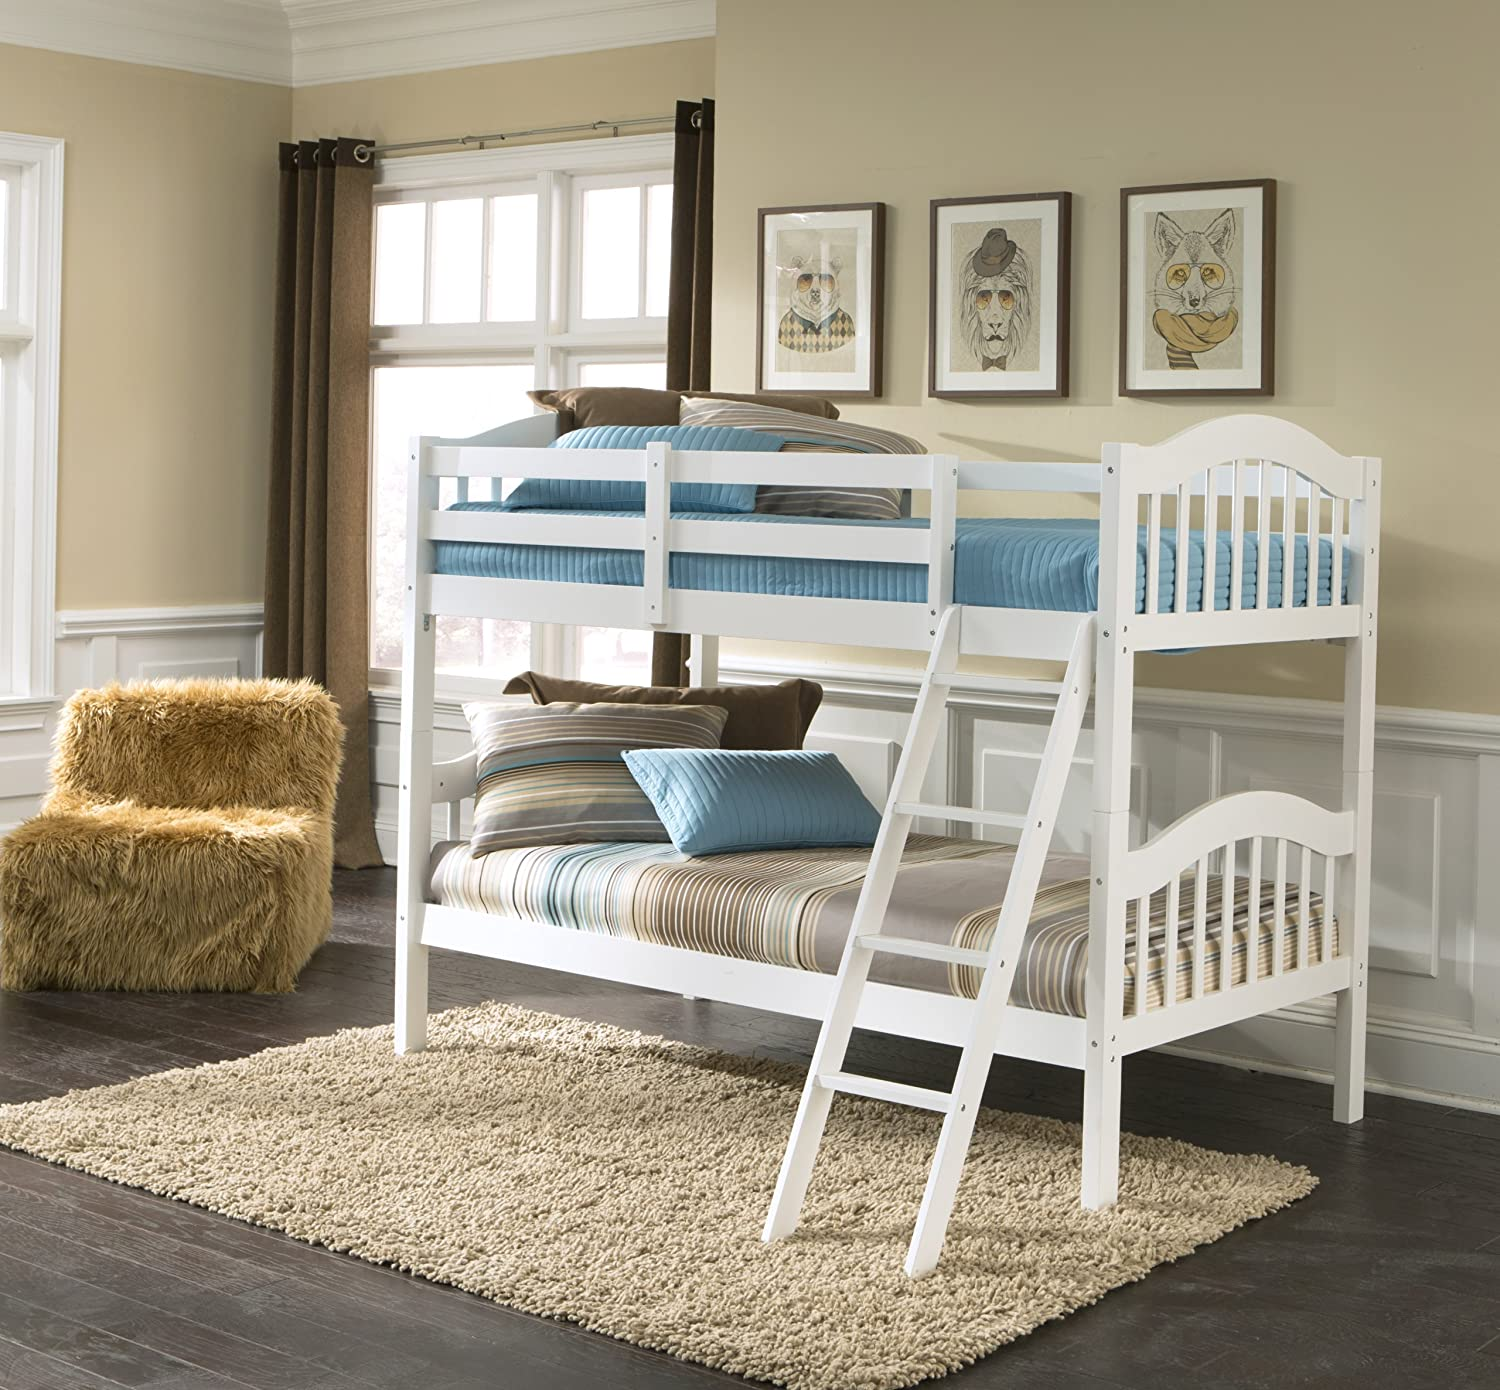 amazoncom storkcraft long horn solid hardwood twin bunk bed white baby